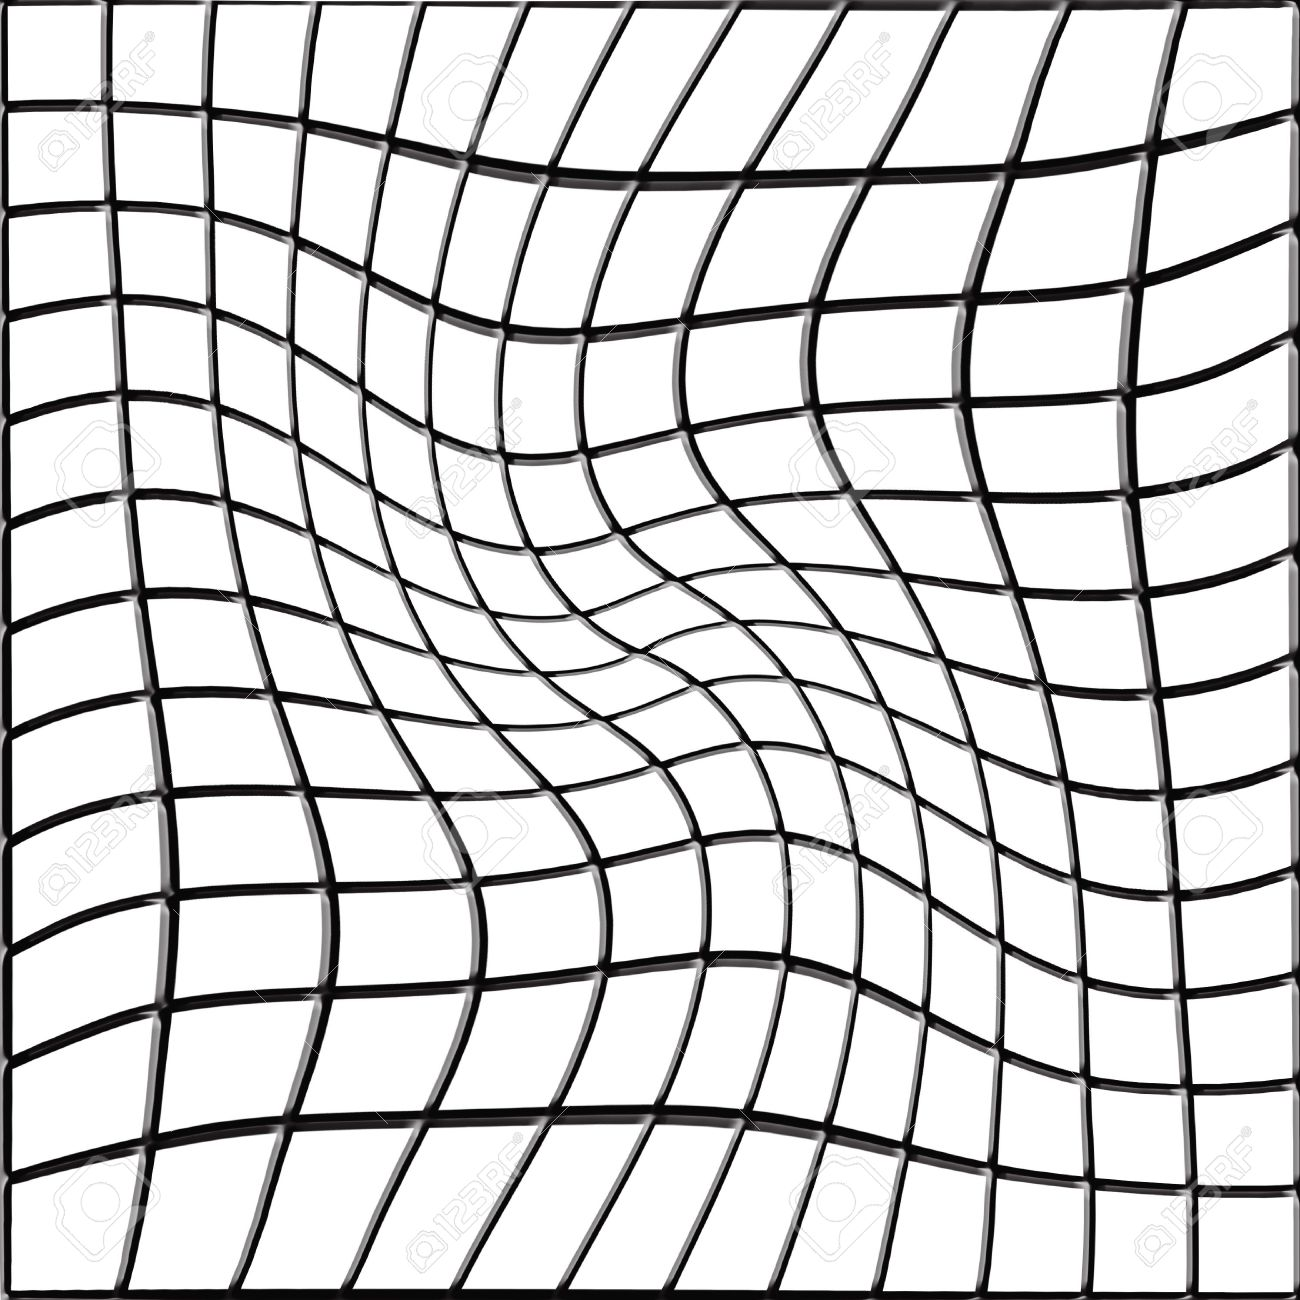 3d Grid Drawing At Getdrawings